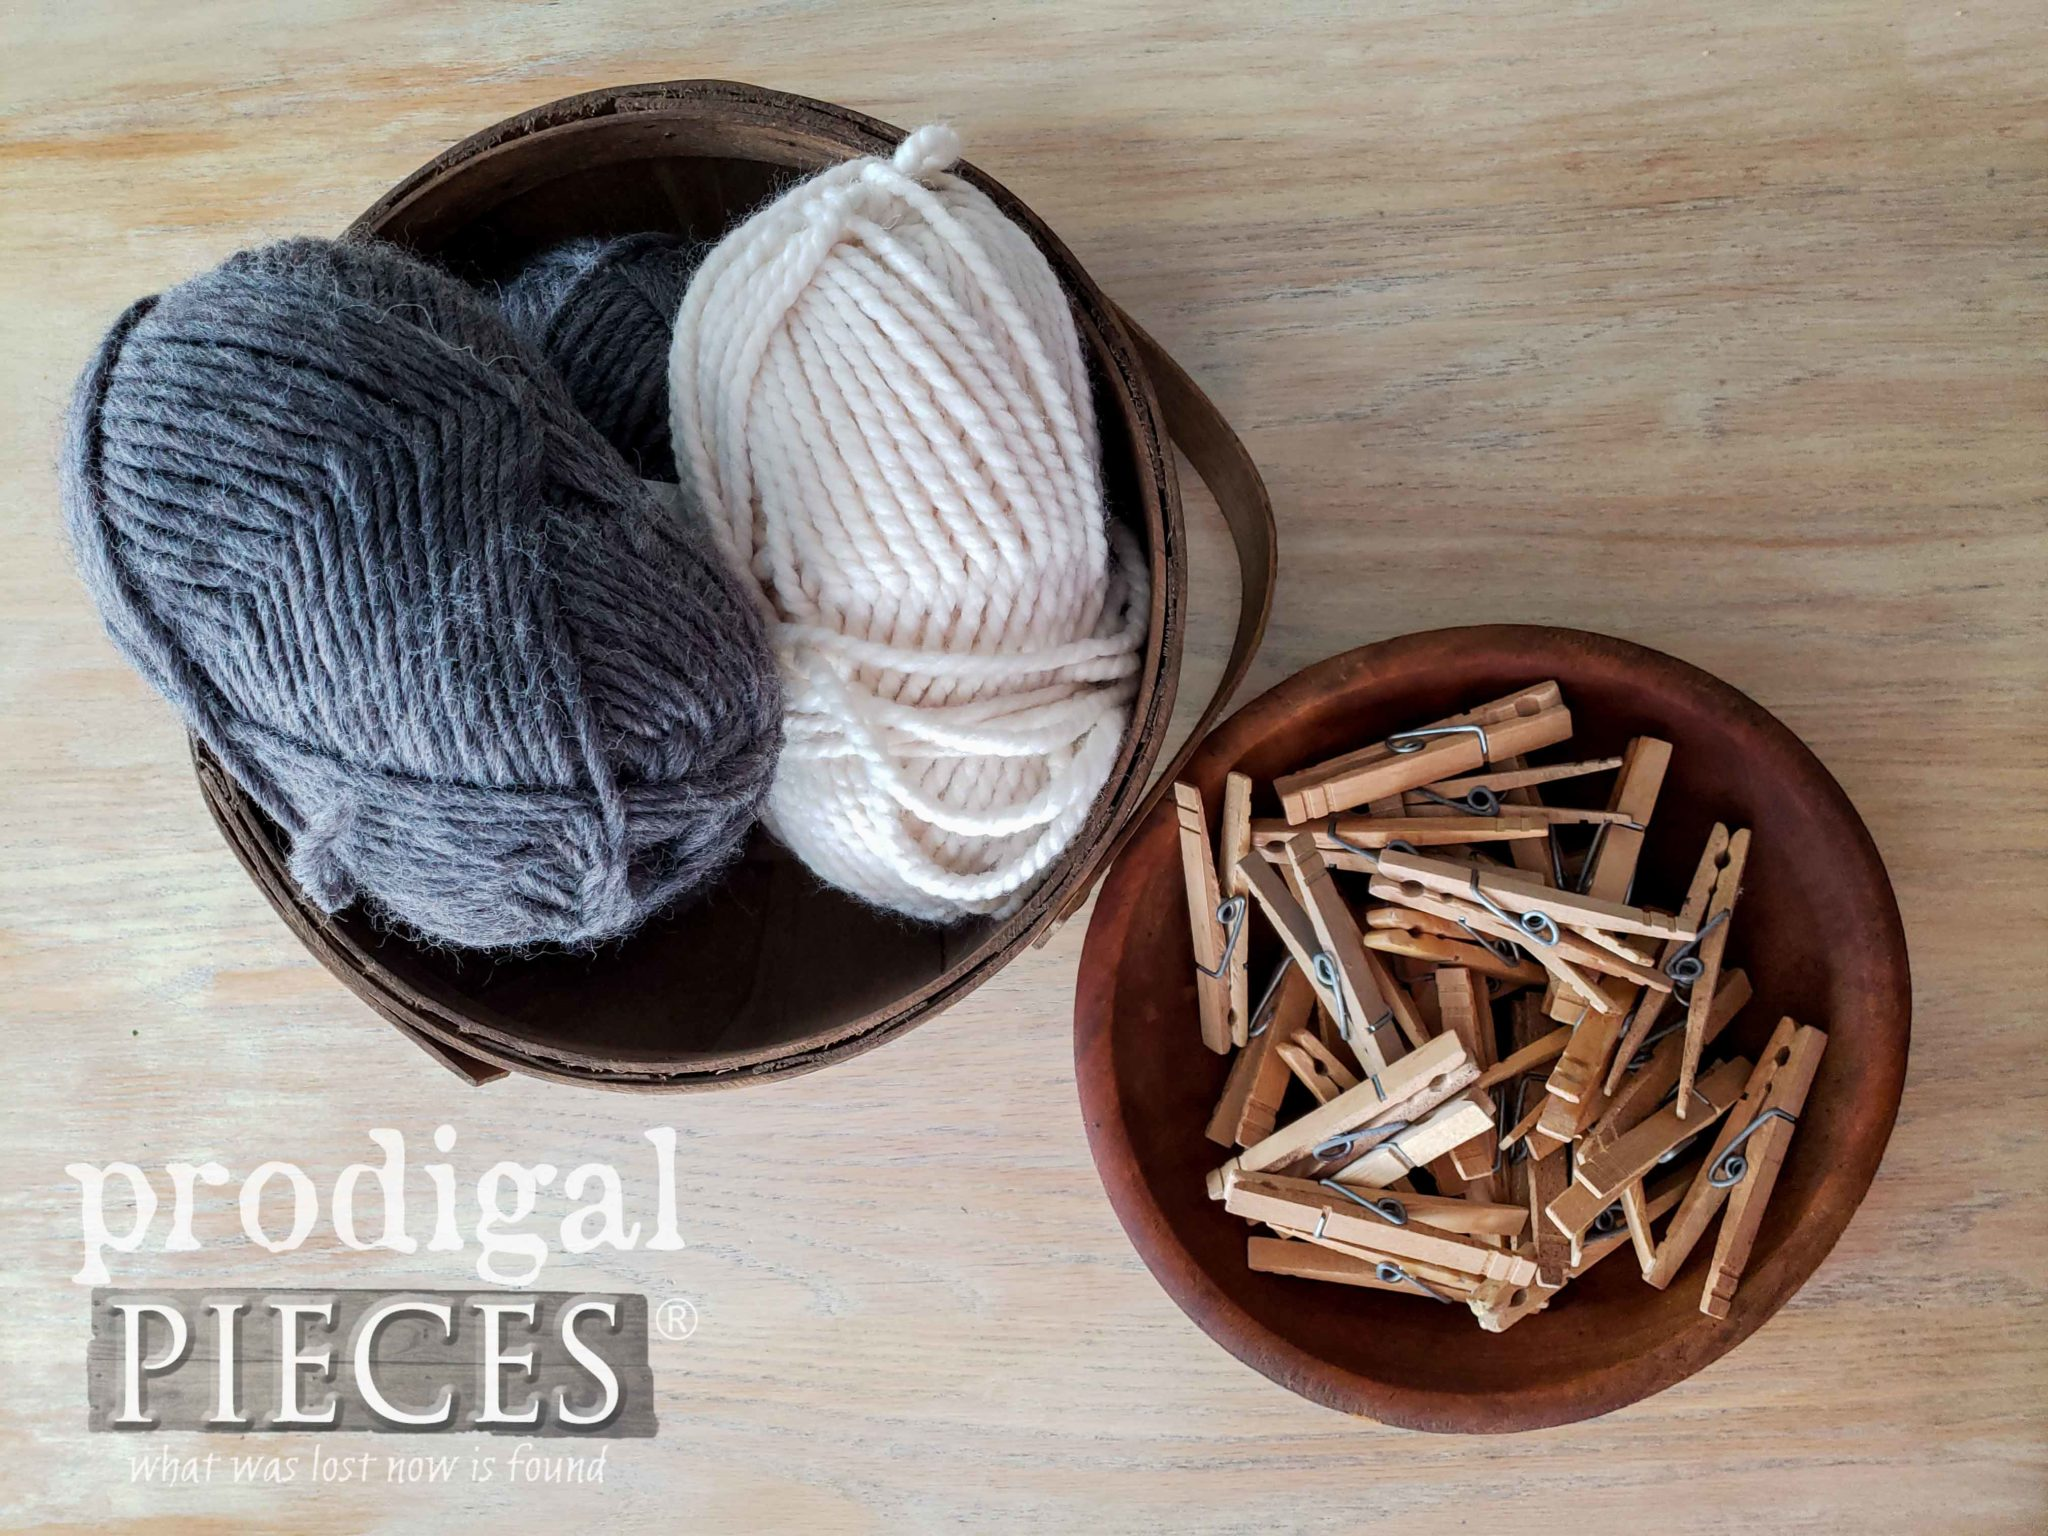 Wool Yarn and Clothespins to make Woolly Sheep Ornaments | Video Tutorial by Larissa of Prodigal Pieces | prodigalpieces.com